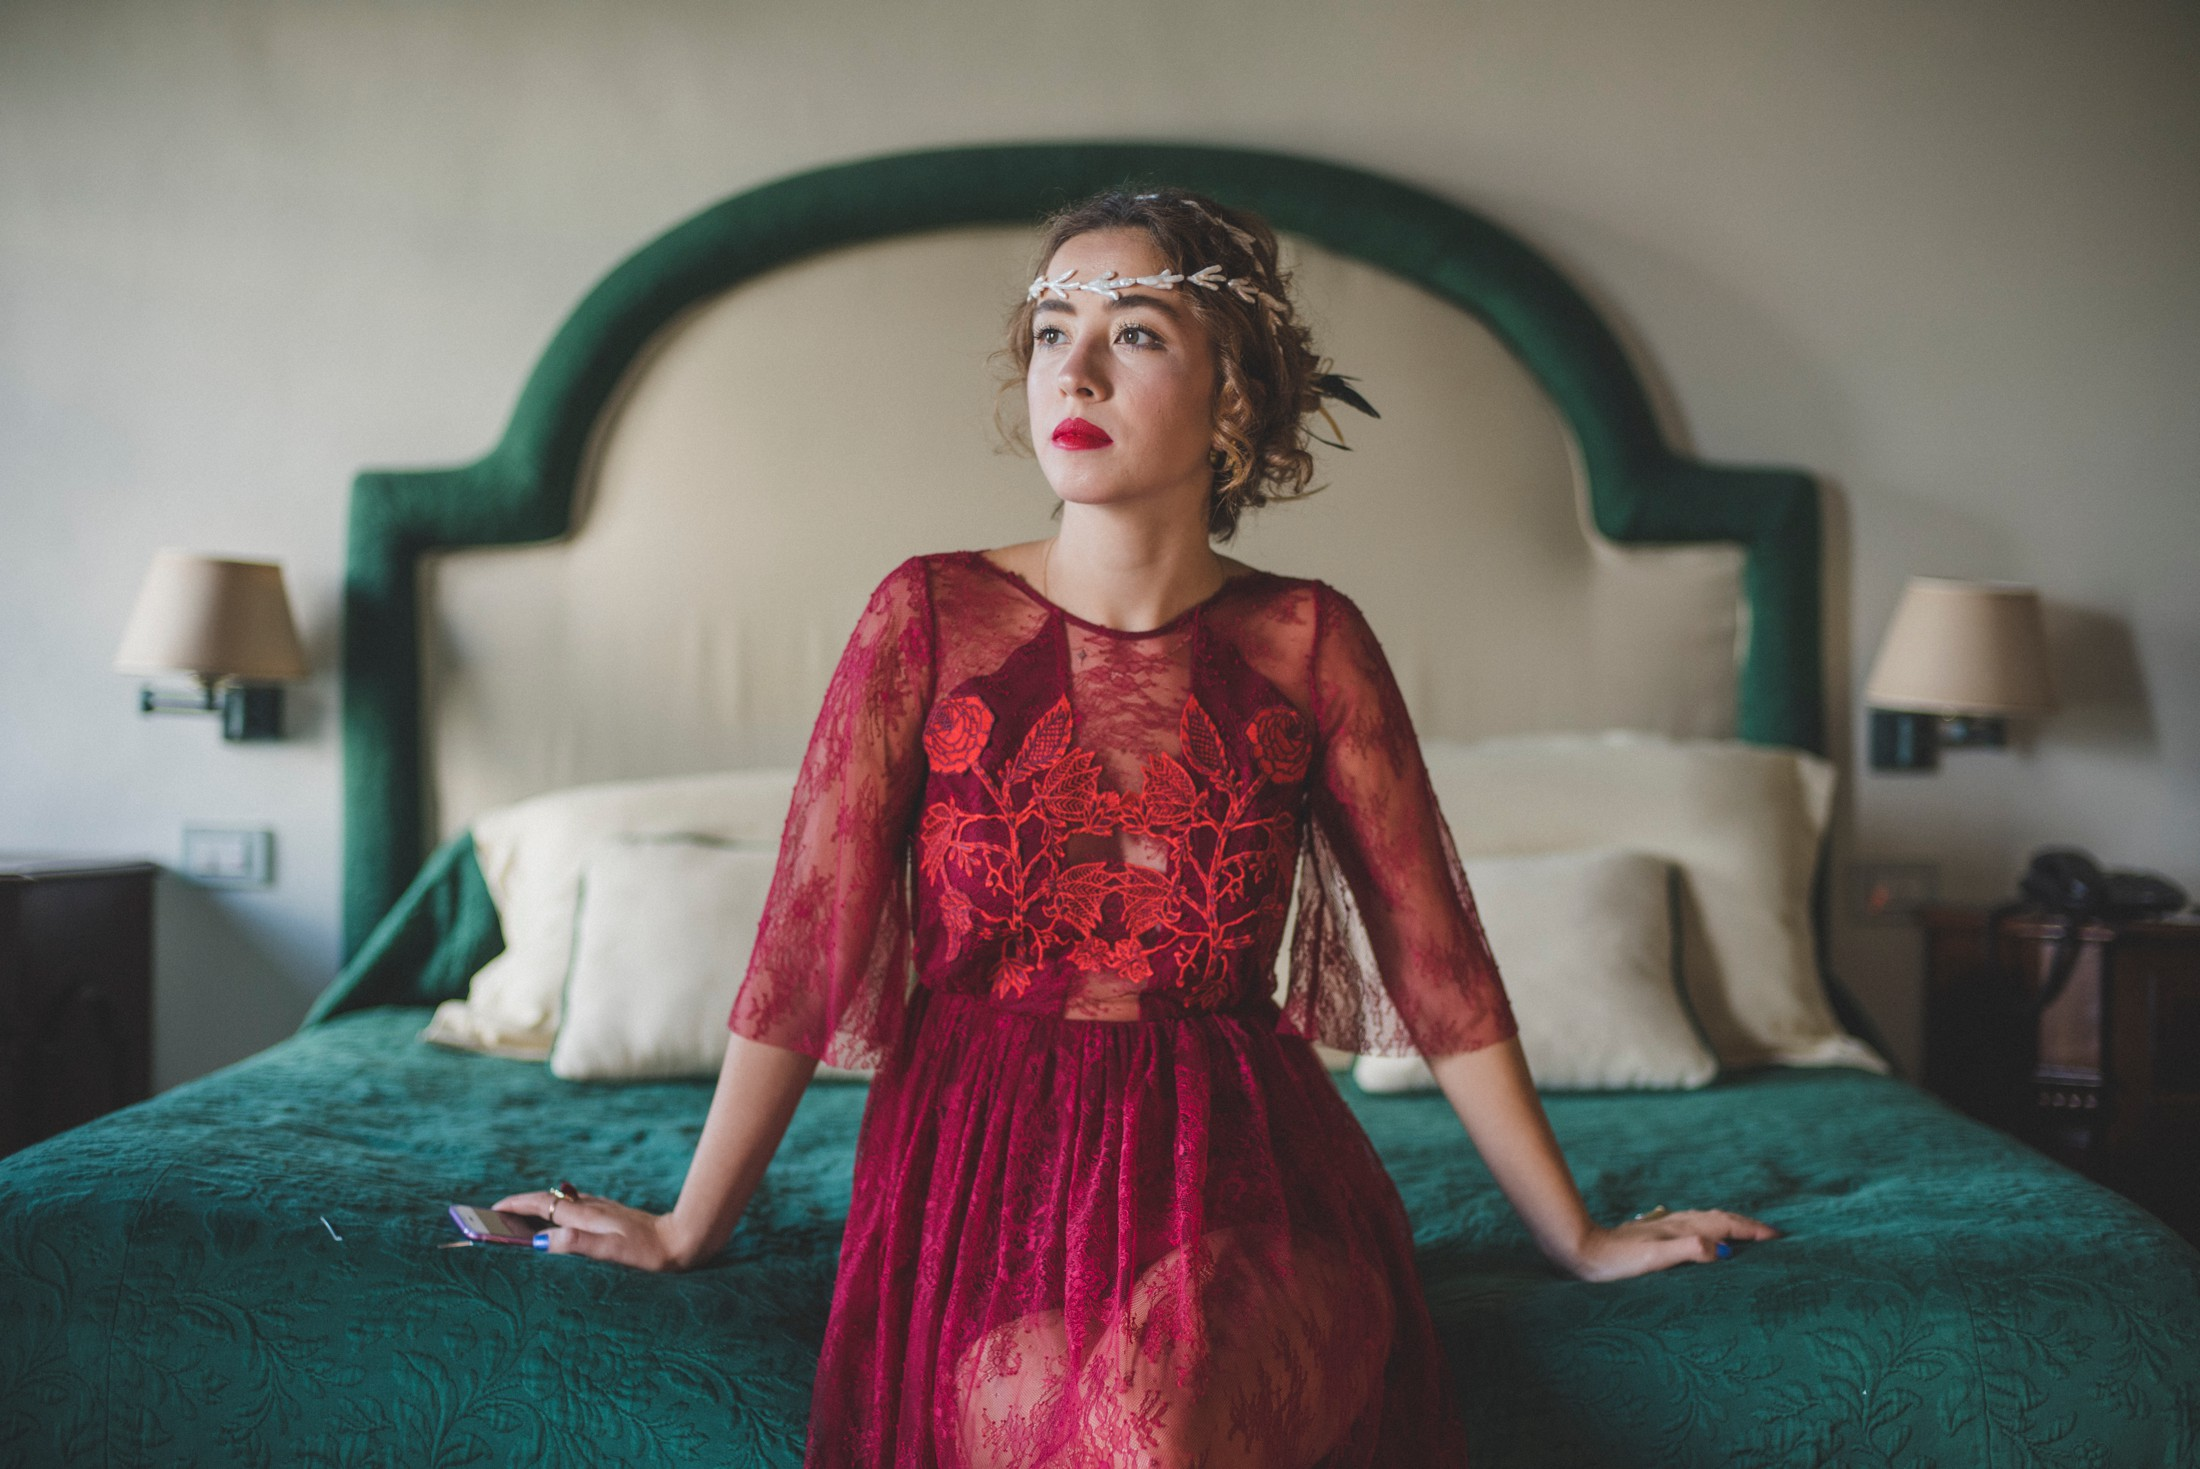 luxury wedding woman in a red dress sitting on the bed